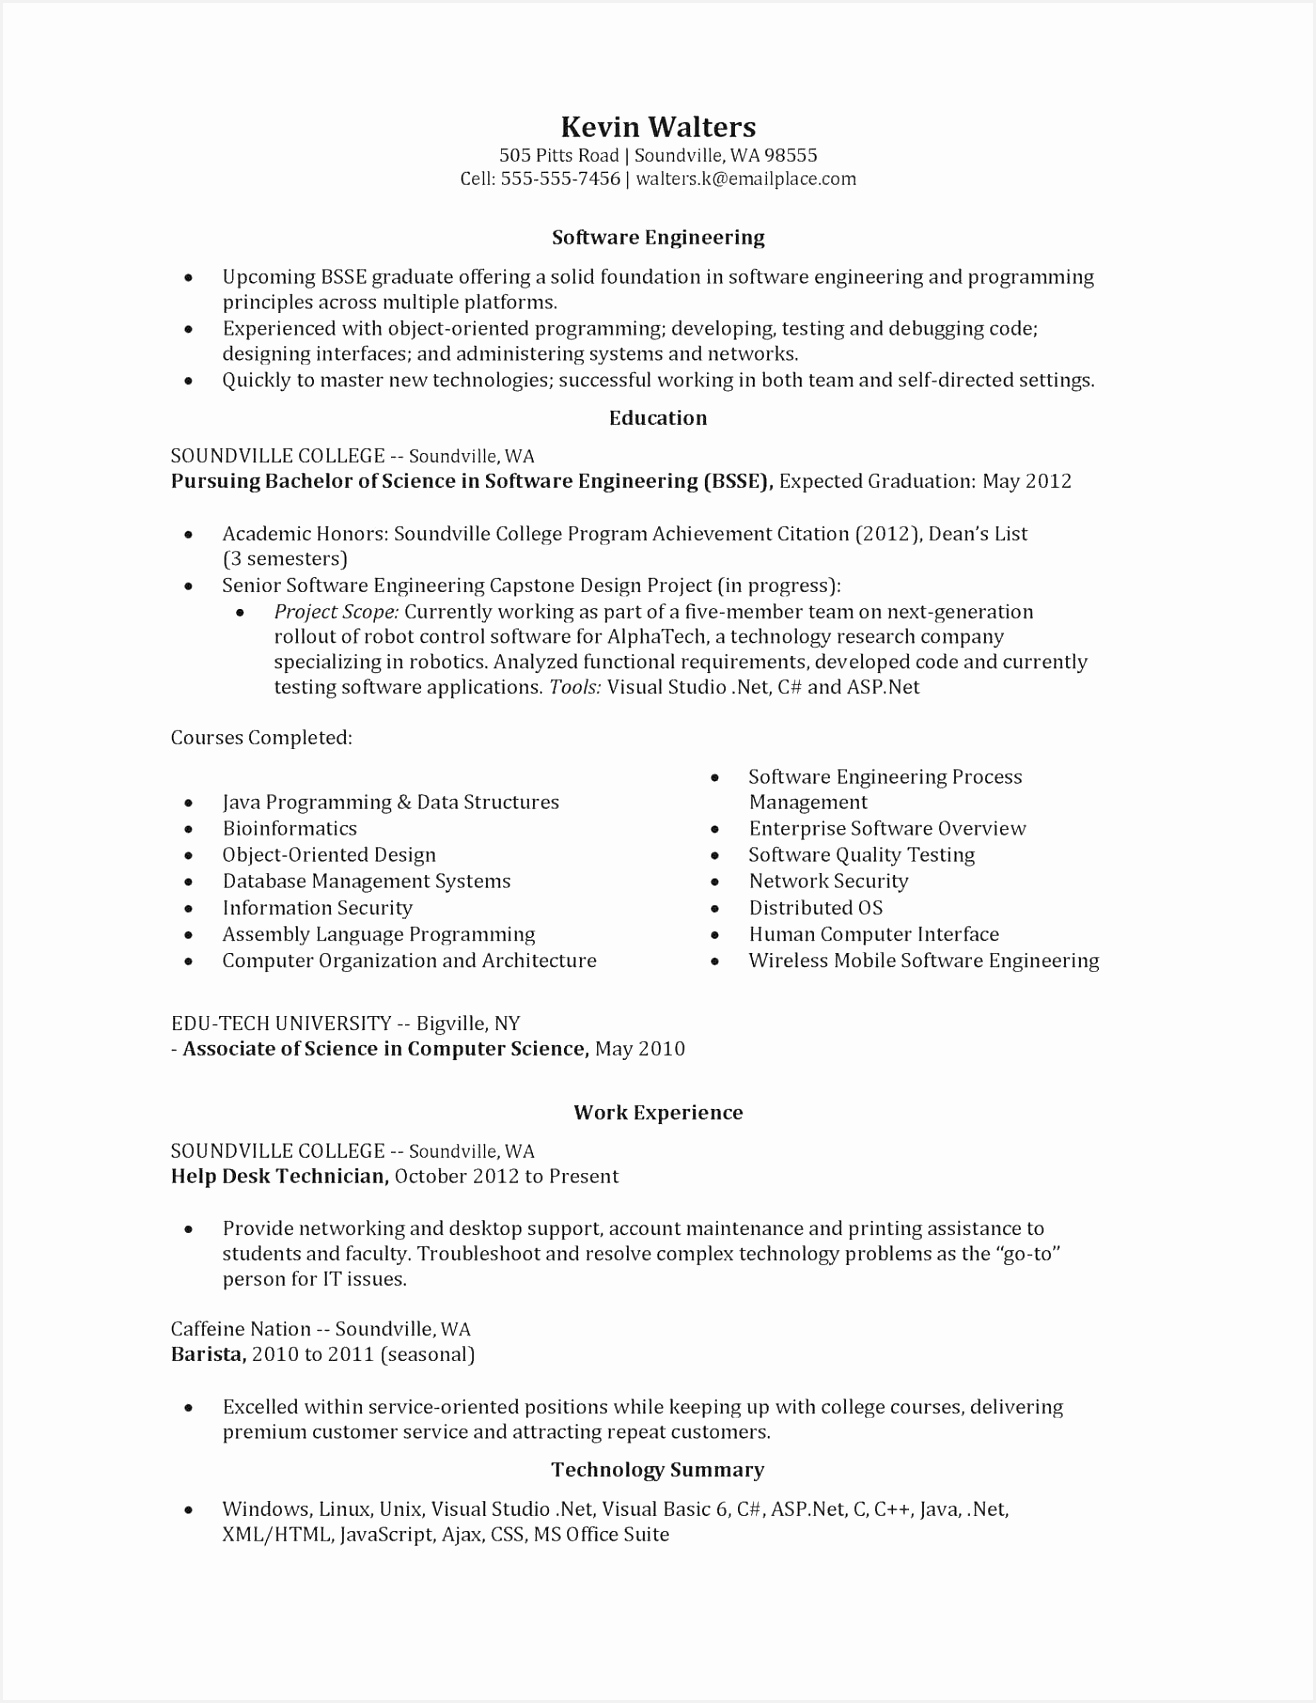 Resume Samples for Graduate School Qcsae Lovely Graduate School Resume Examples Unique Lpn Resume Sample New Line Of Resume Samples for Graduate School Gchle Inspirational Student Affairs Resume Samples Best Resume Examples for Jobs with